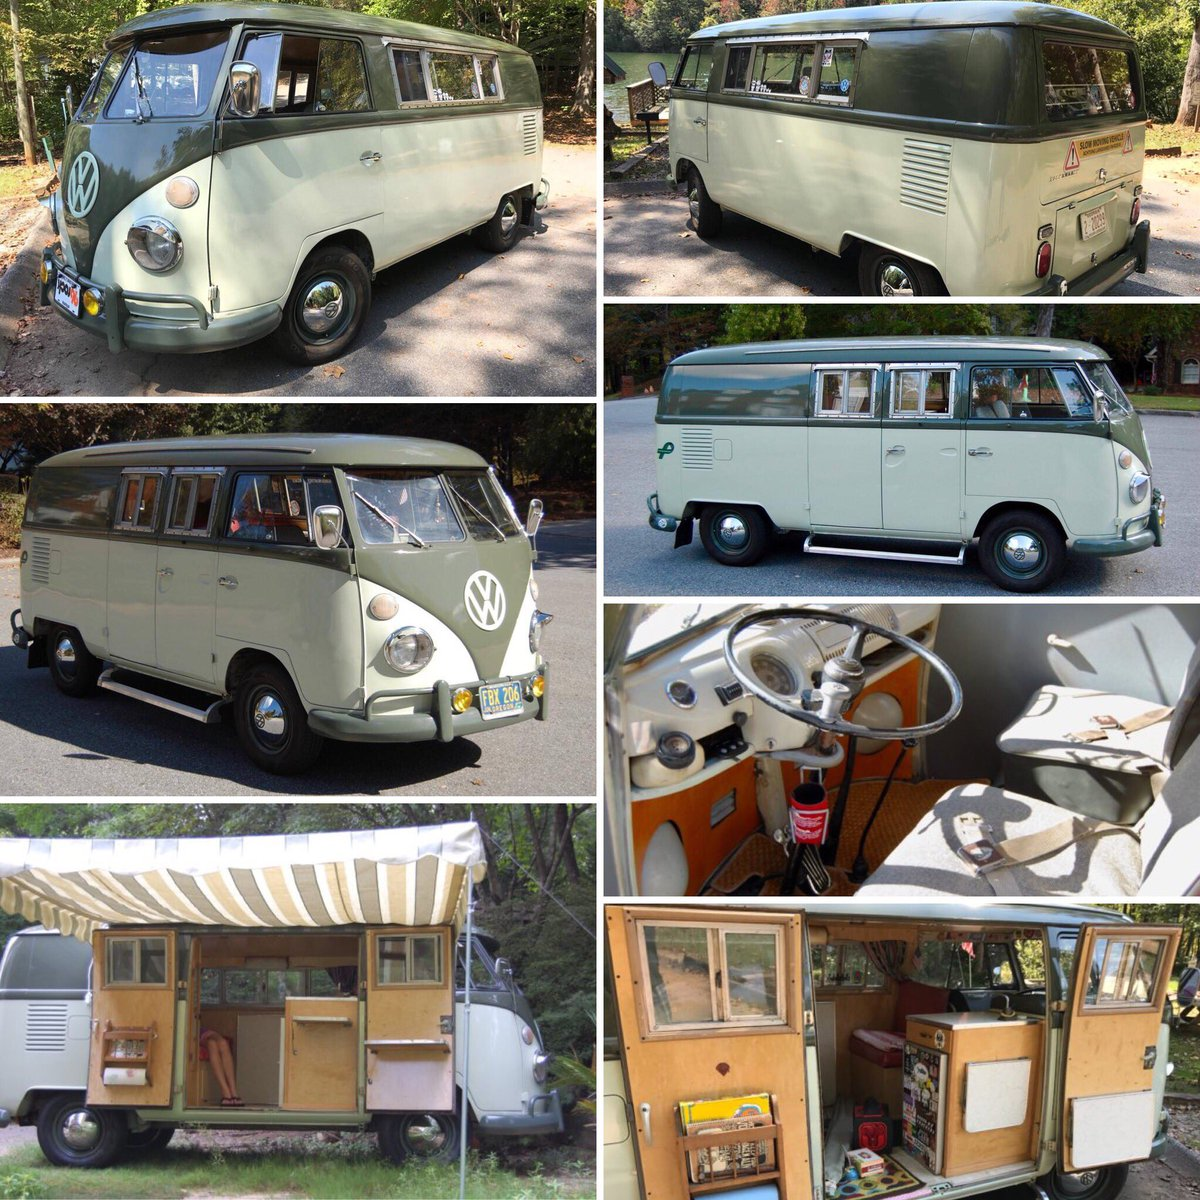 Delighted Bulldog Car Wiring Diagrams Tiny Car Alarm Wiring Shaped Wiring A Guitar Remote Start Alarm Installation Young Dimarzio Push Pull Pot WhiteAlarm Diagram VW Bus And Camper (@VWBusAndCamper) Twitter Profile \u2022 TwiBlue